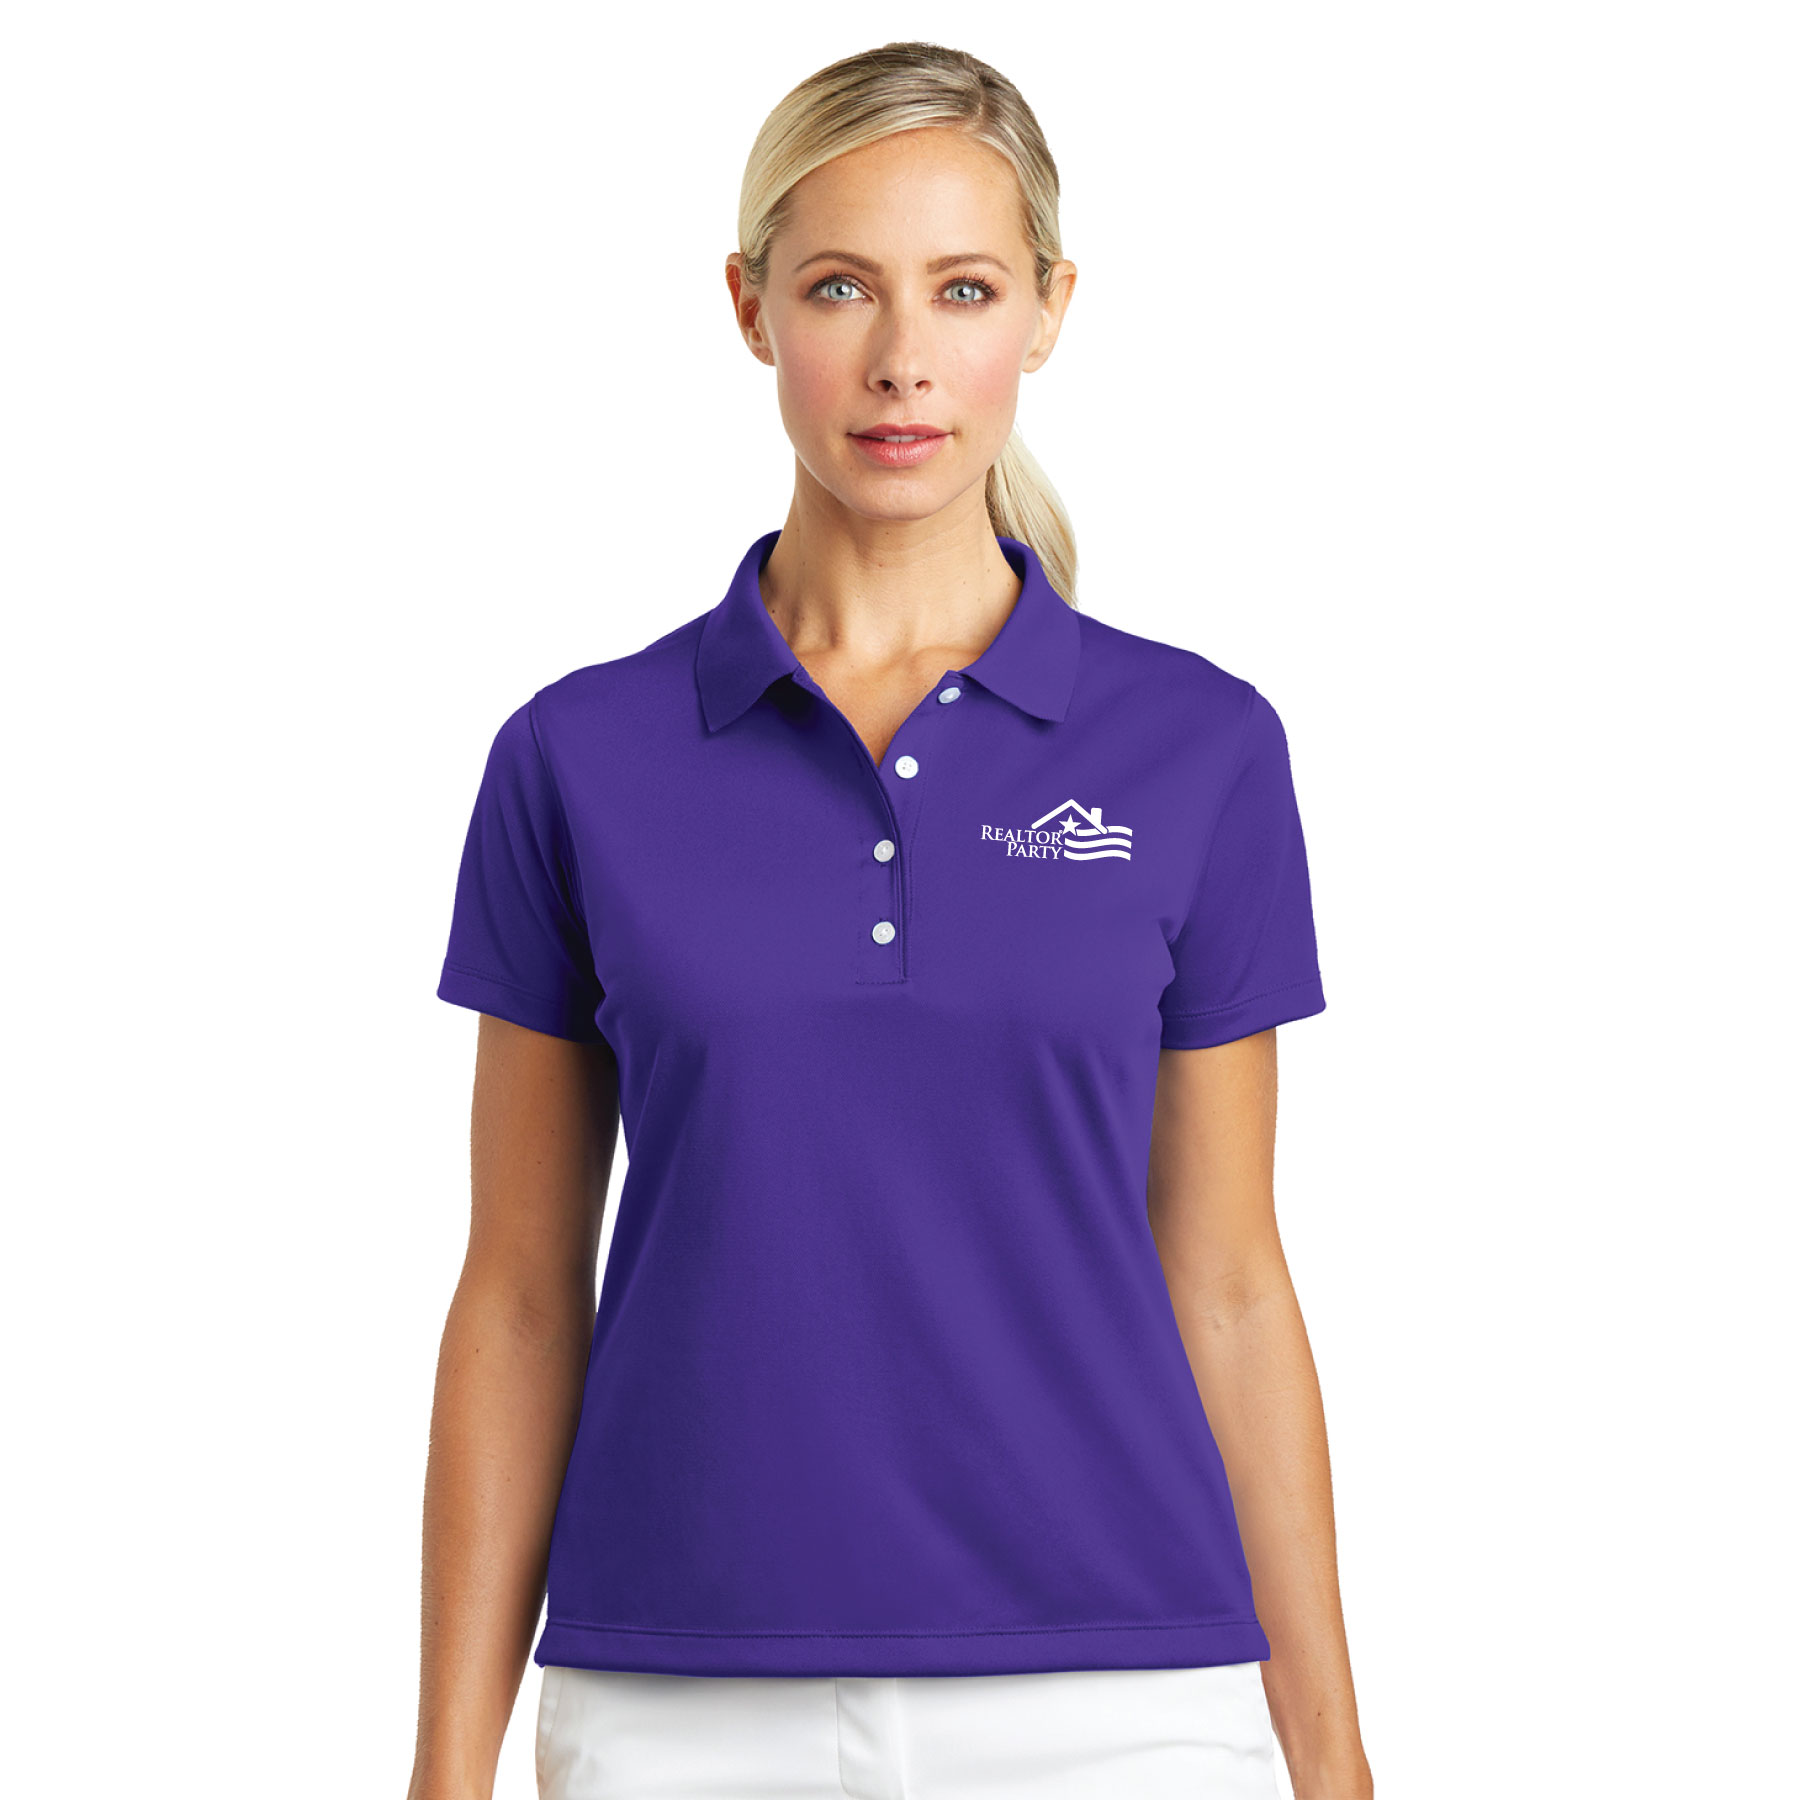 REALTOR® Party Ladies Nike® Tech Basic Dri-FIT® Polo Polos,Nikes,Swoshes,Golfs,Stripes,RP,RPAC,Parties,R.P.